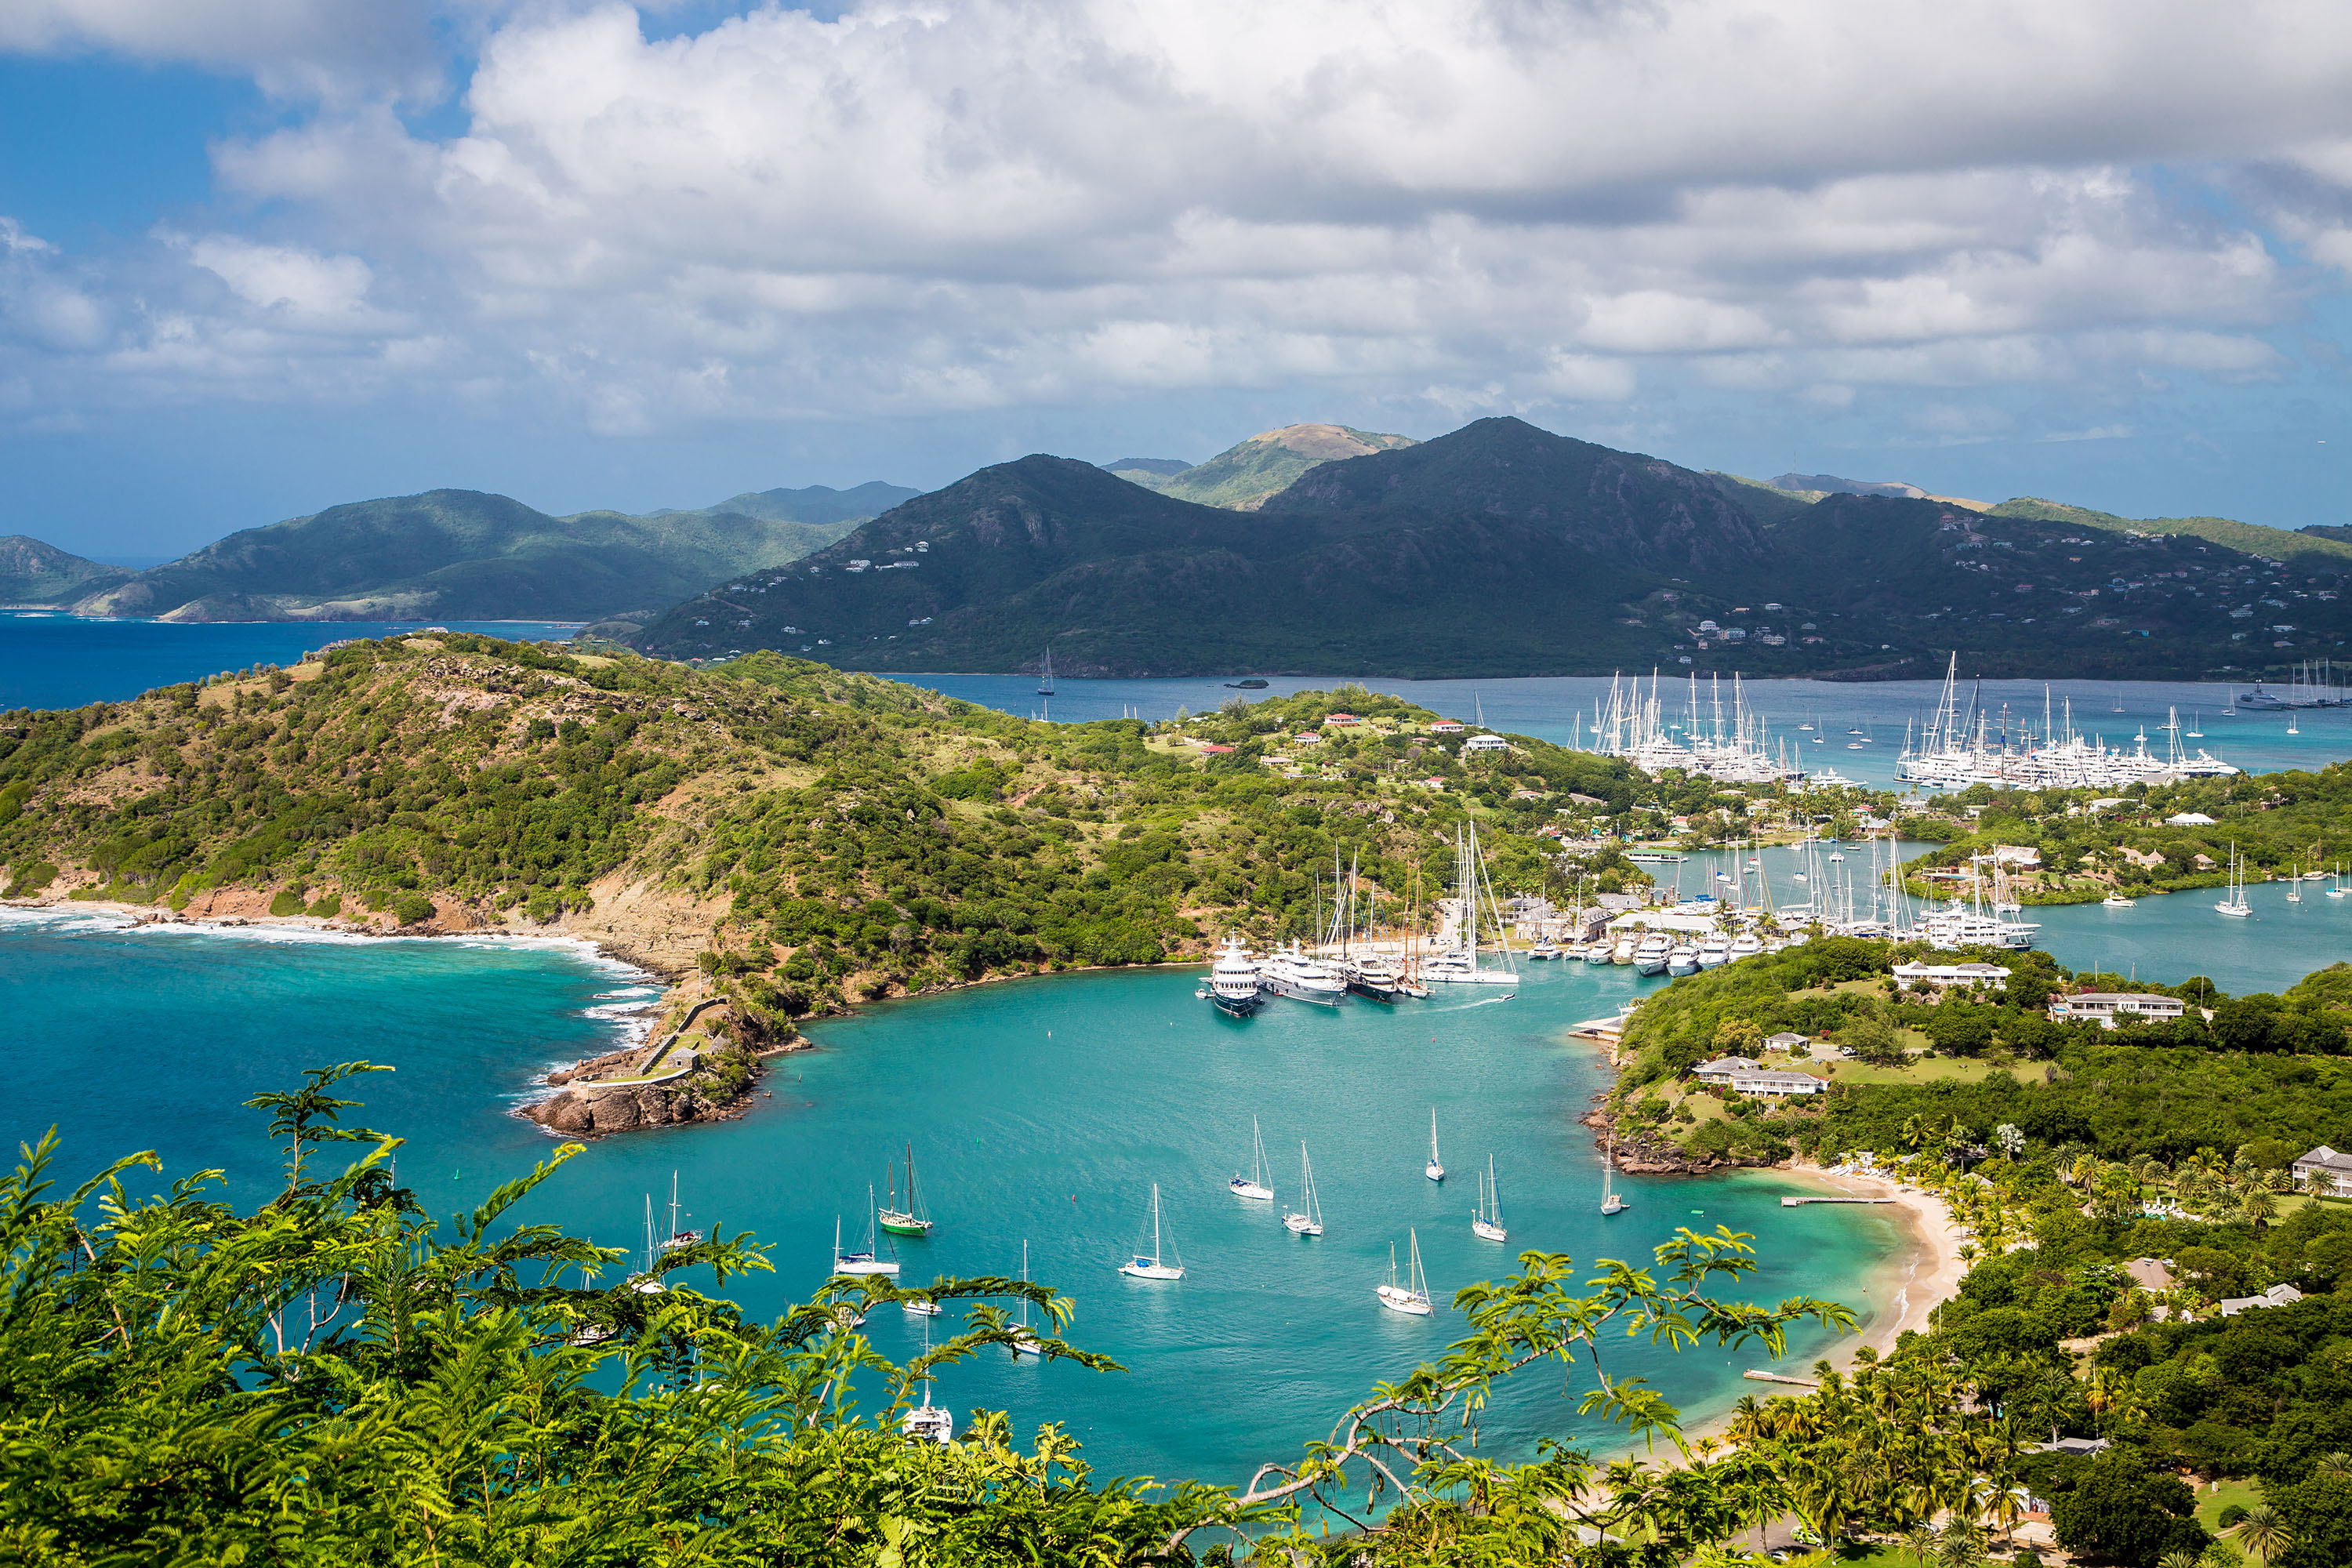 10 Facts You Should Know About the Caribbean